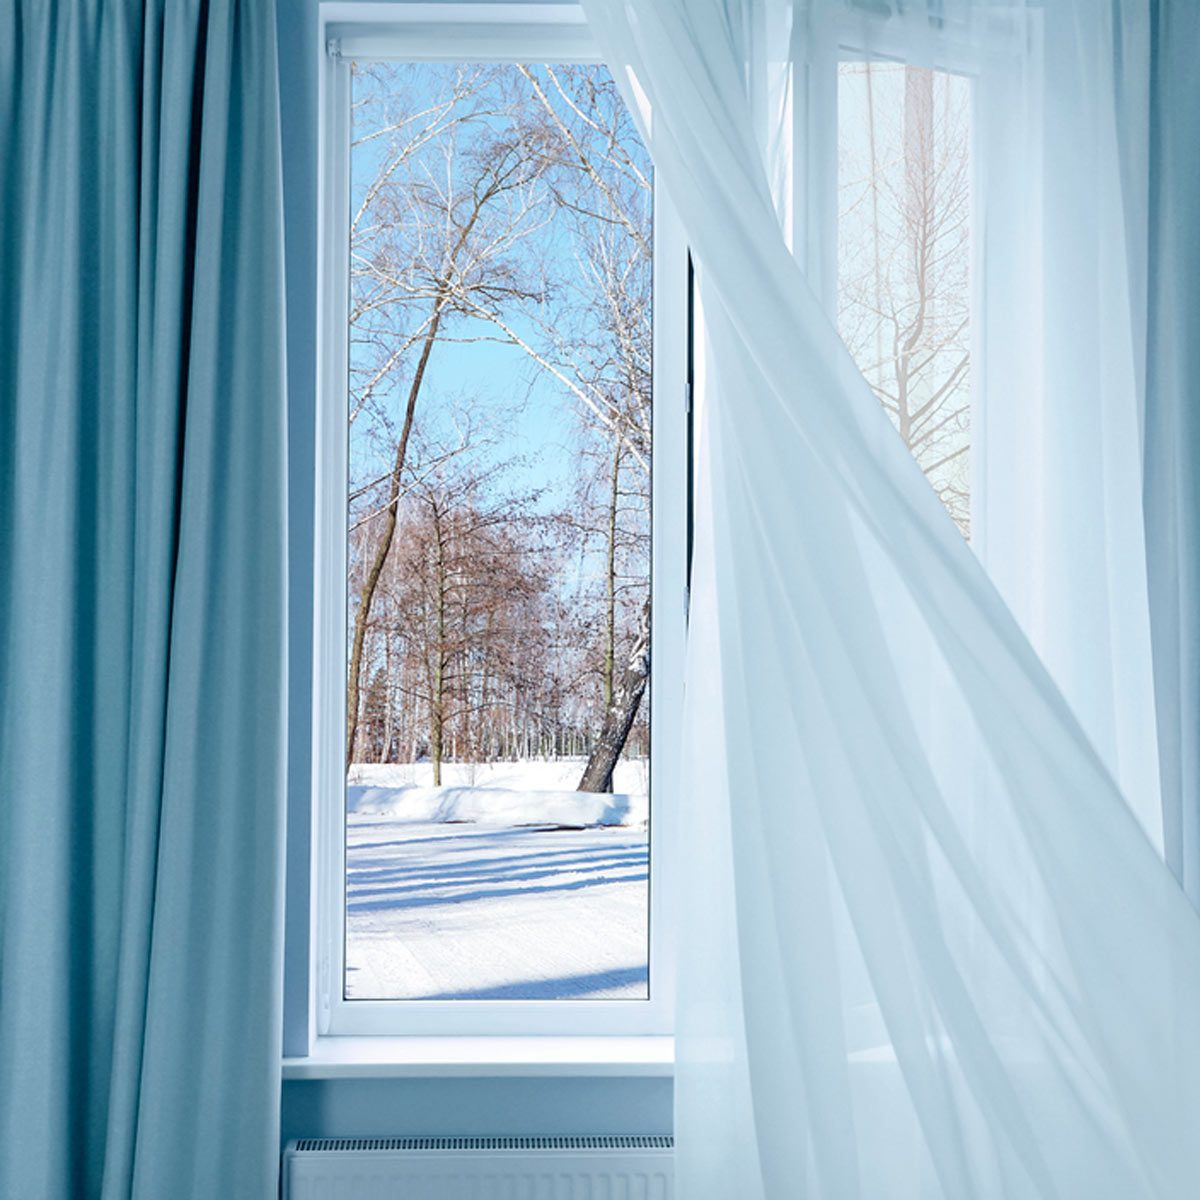 How to Seal Windows for Winter